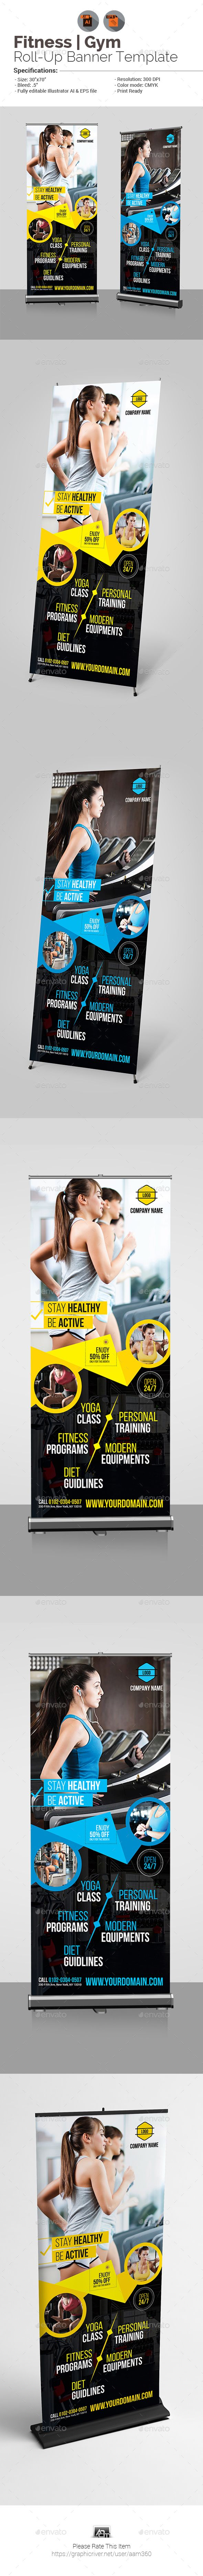 "Fitness - Gym Roll-Up Banner by aam360 Similar Templates:INFORMATIONS FOR THIS ROLL-UP BANNER:FEATURES:Size 30""x70""Bleed: .5""Two Color Variations Fully editable Illustra"